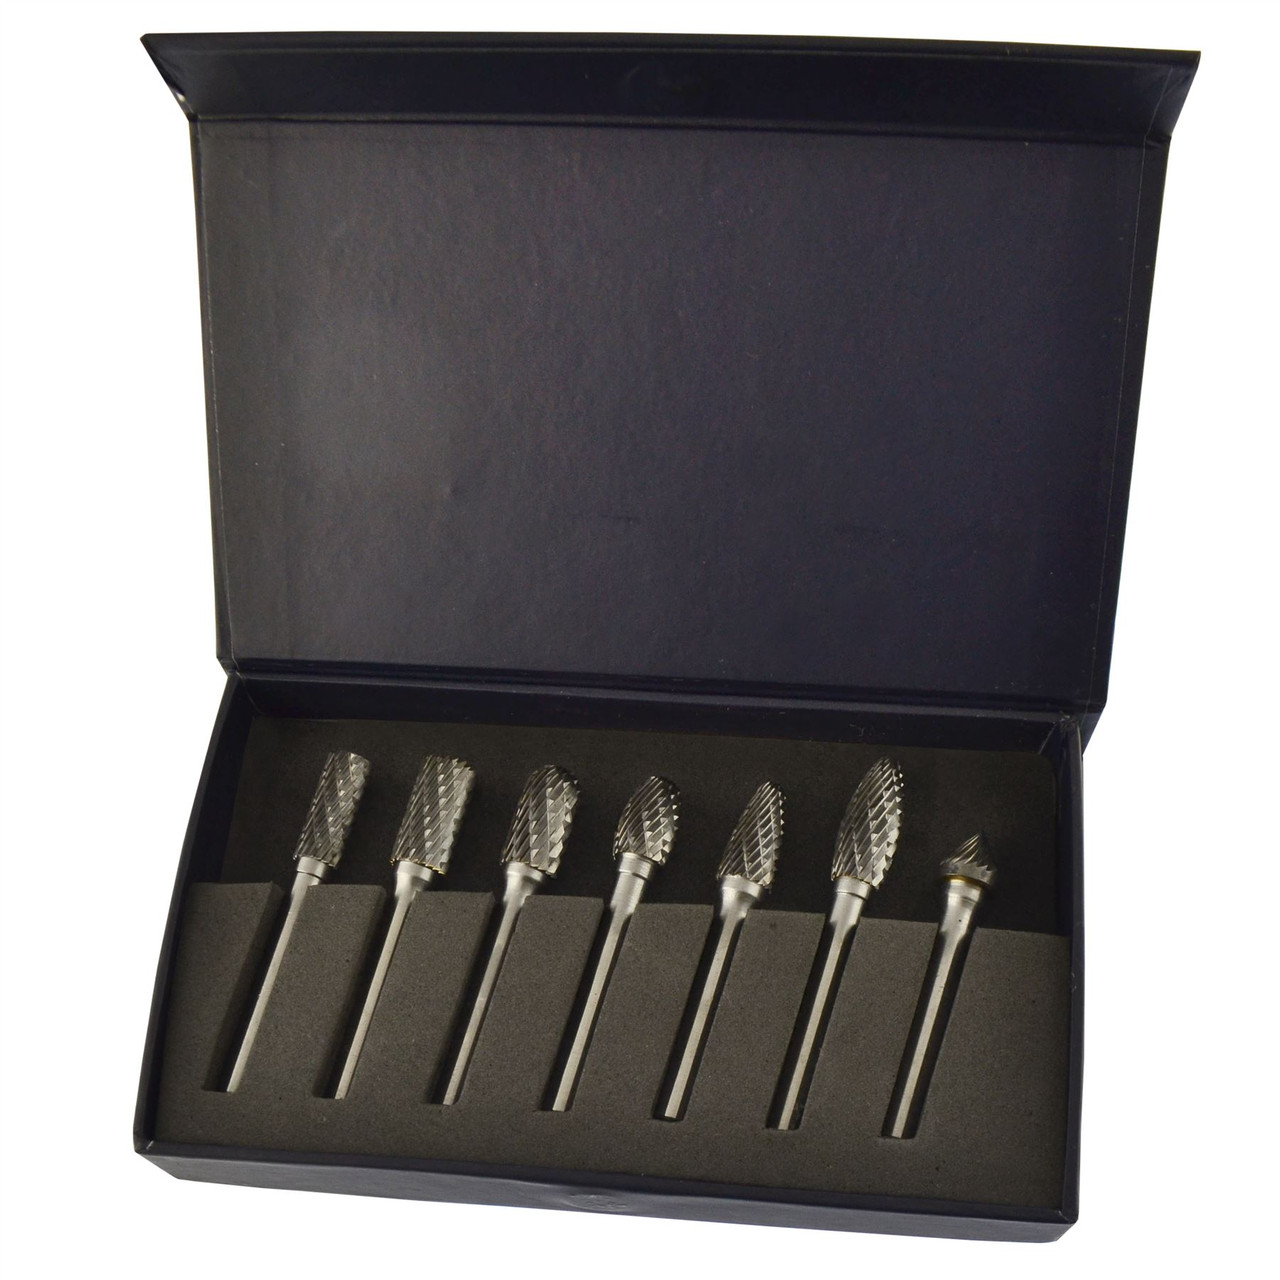 Tungsten carbide burr / rotary files 7pc set / hole enlarger by BERGEN AT173